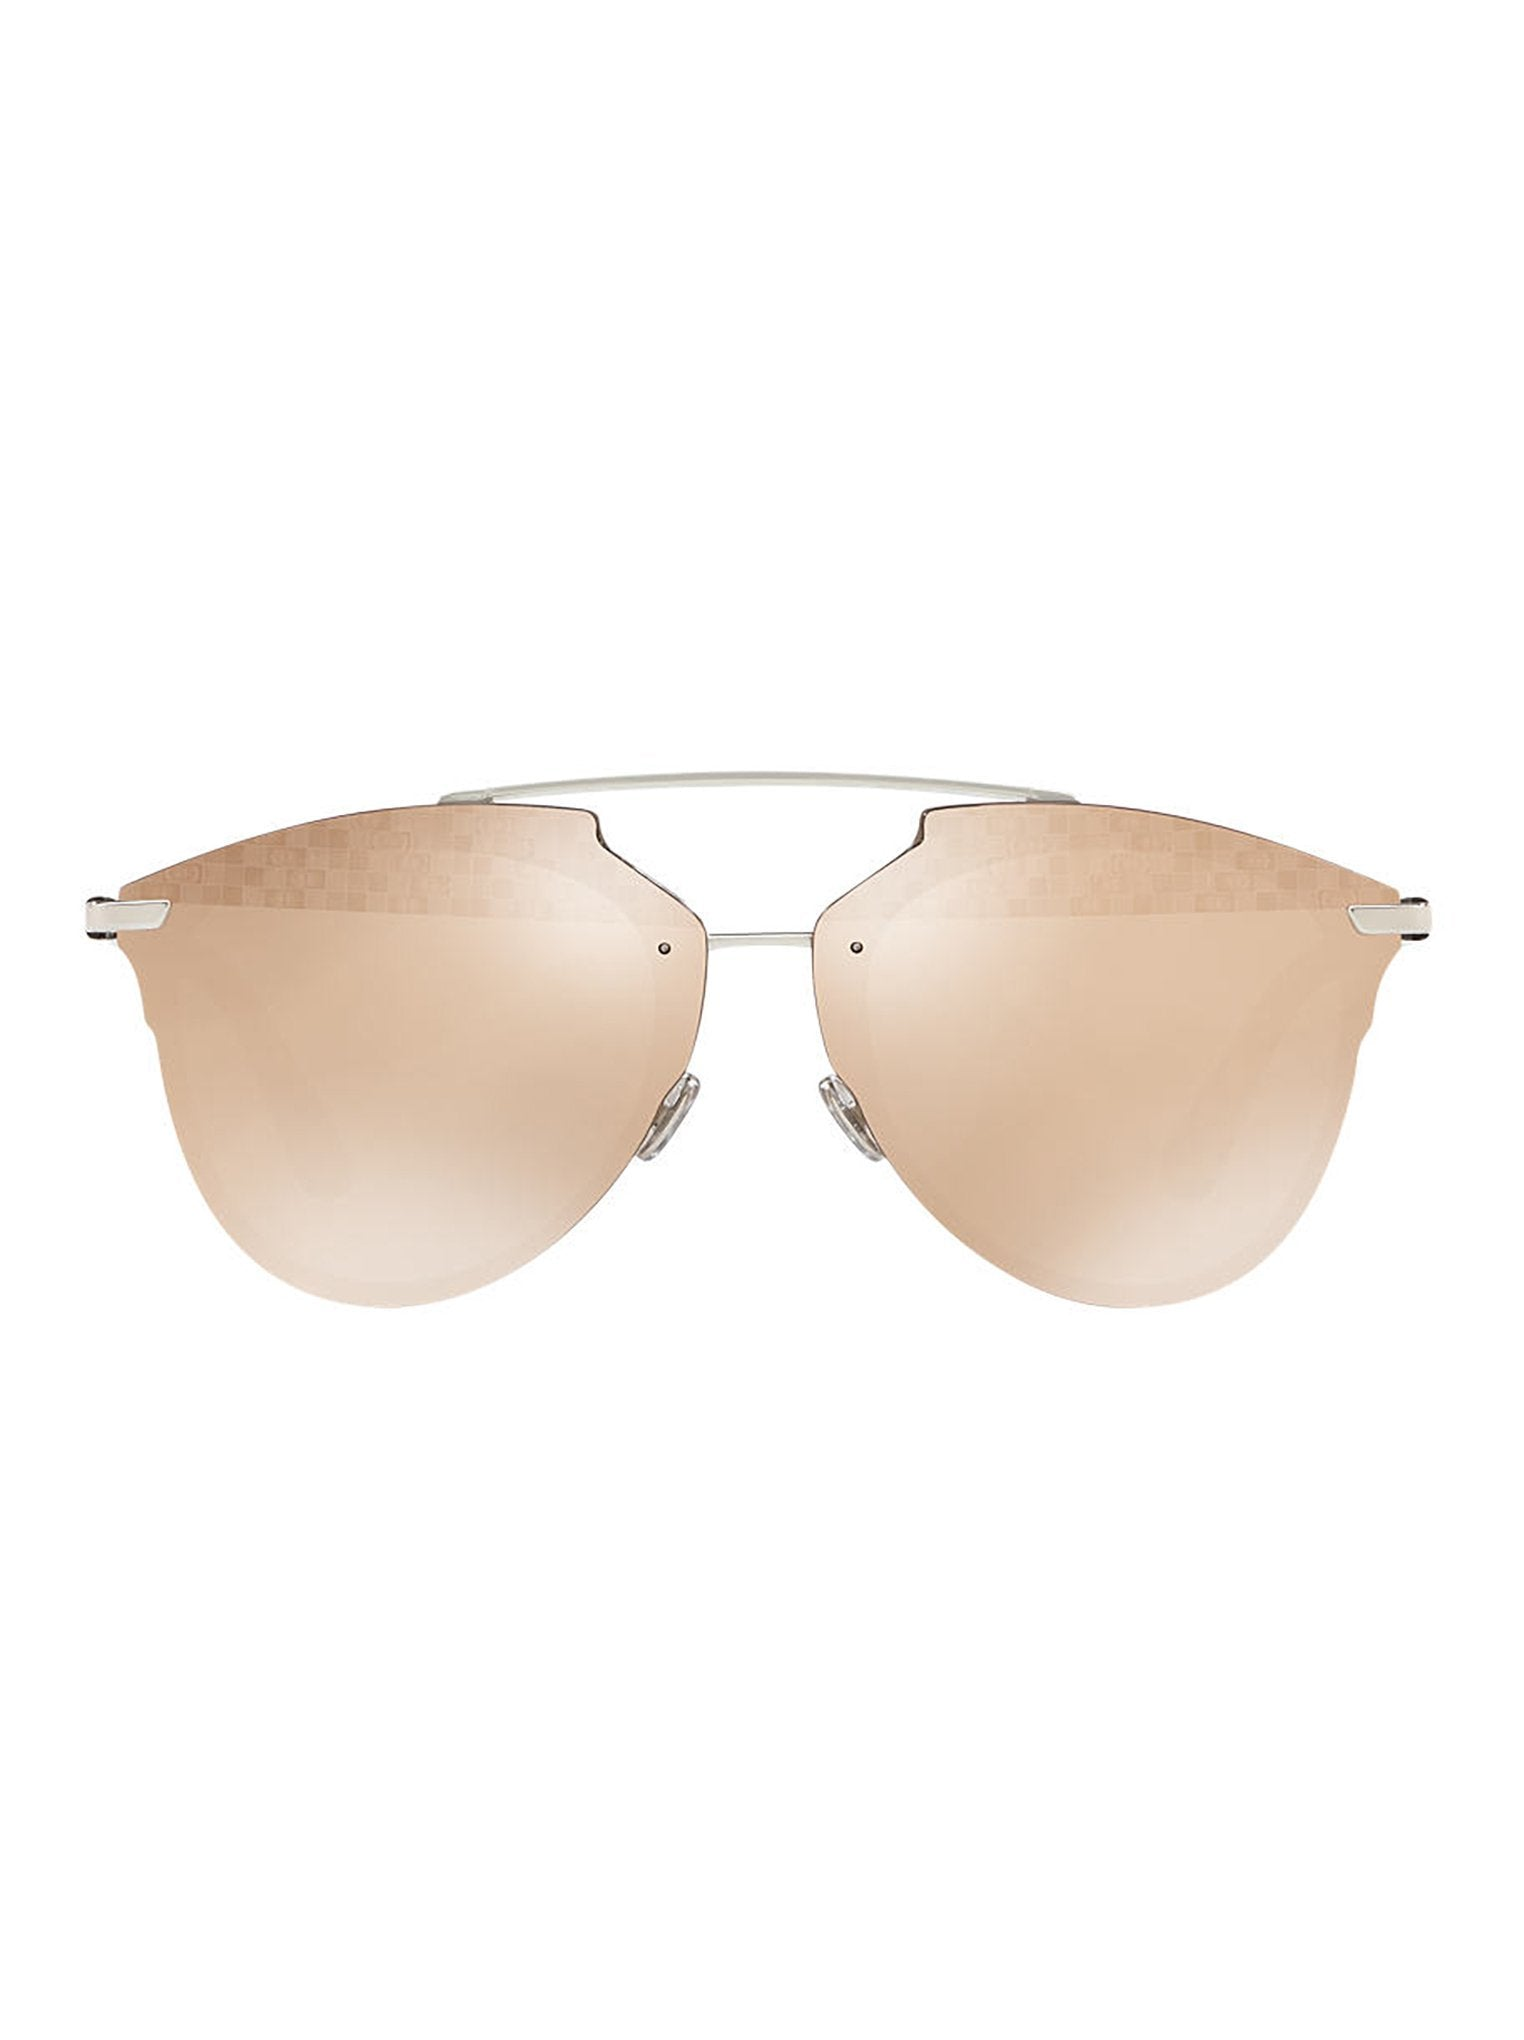 aa09f04bb32a Reflected P Sunglasses - Palladium   Multilayer Gold – ForwardModa